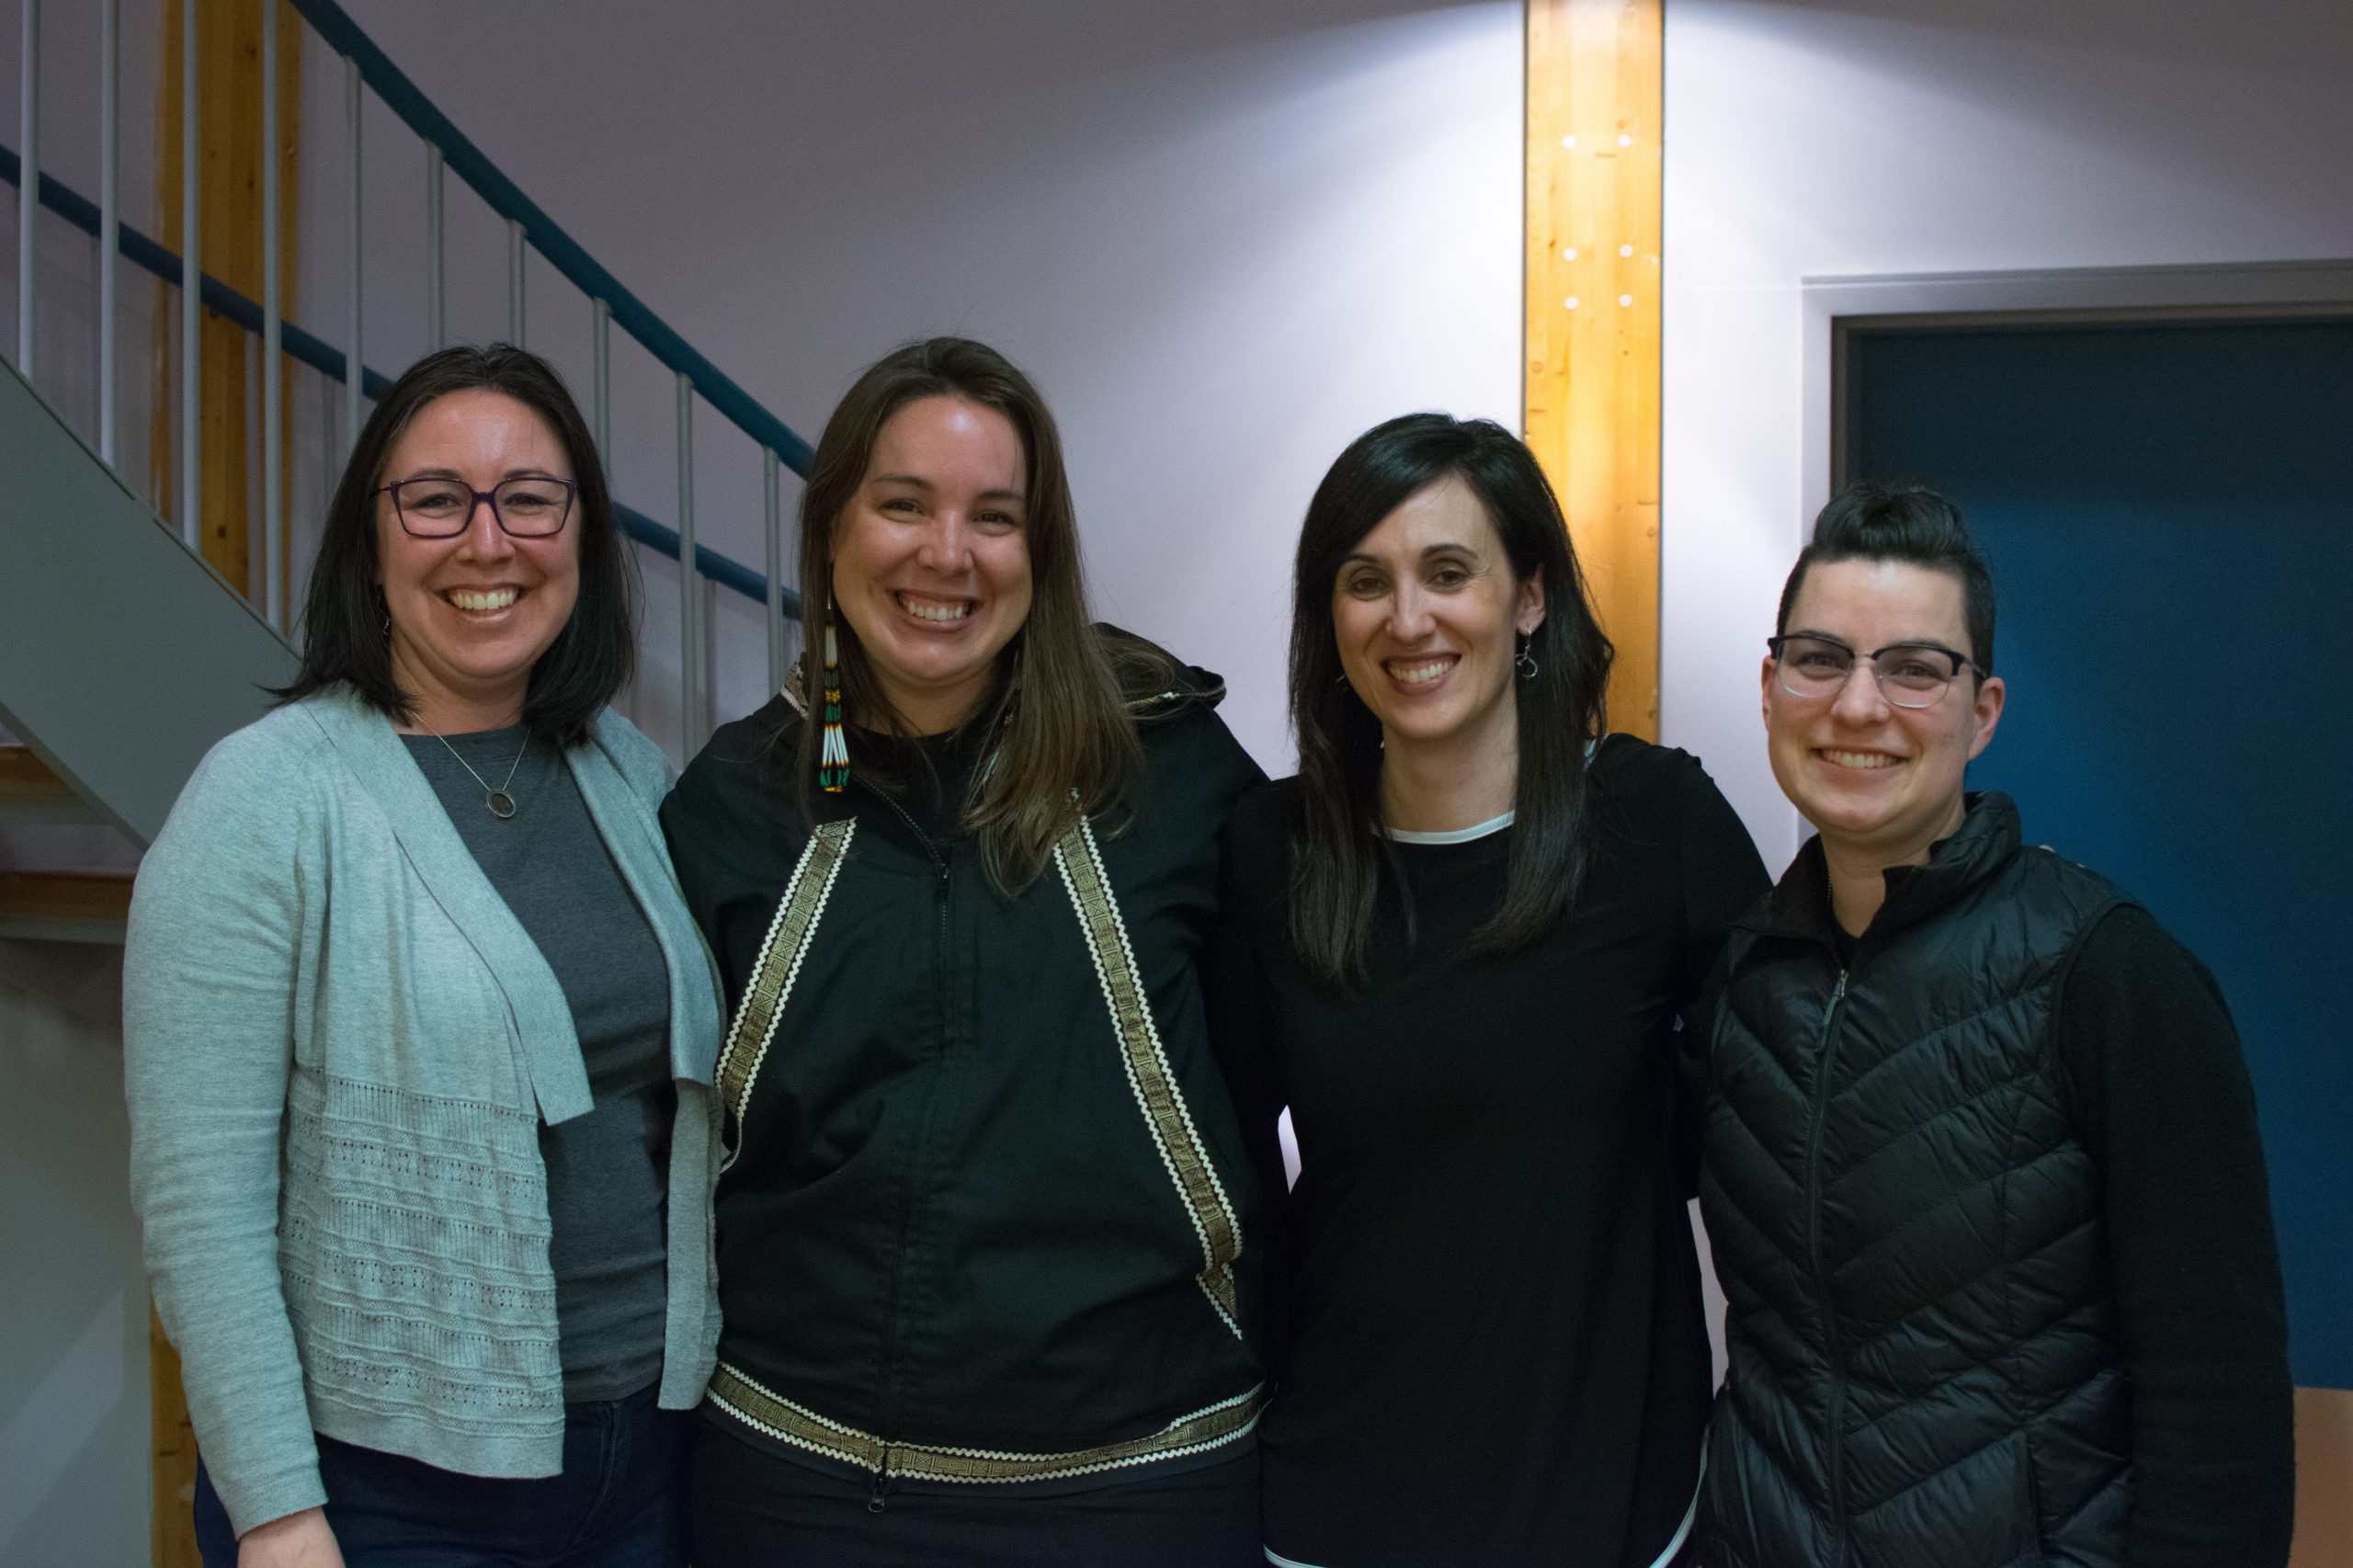 From left are Catharyn Andersen, Dr. Eve Tuck, Dr. Ashlee Cunsolo and Dr. Max Liboiron.